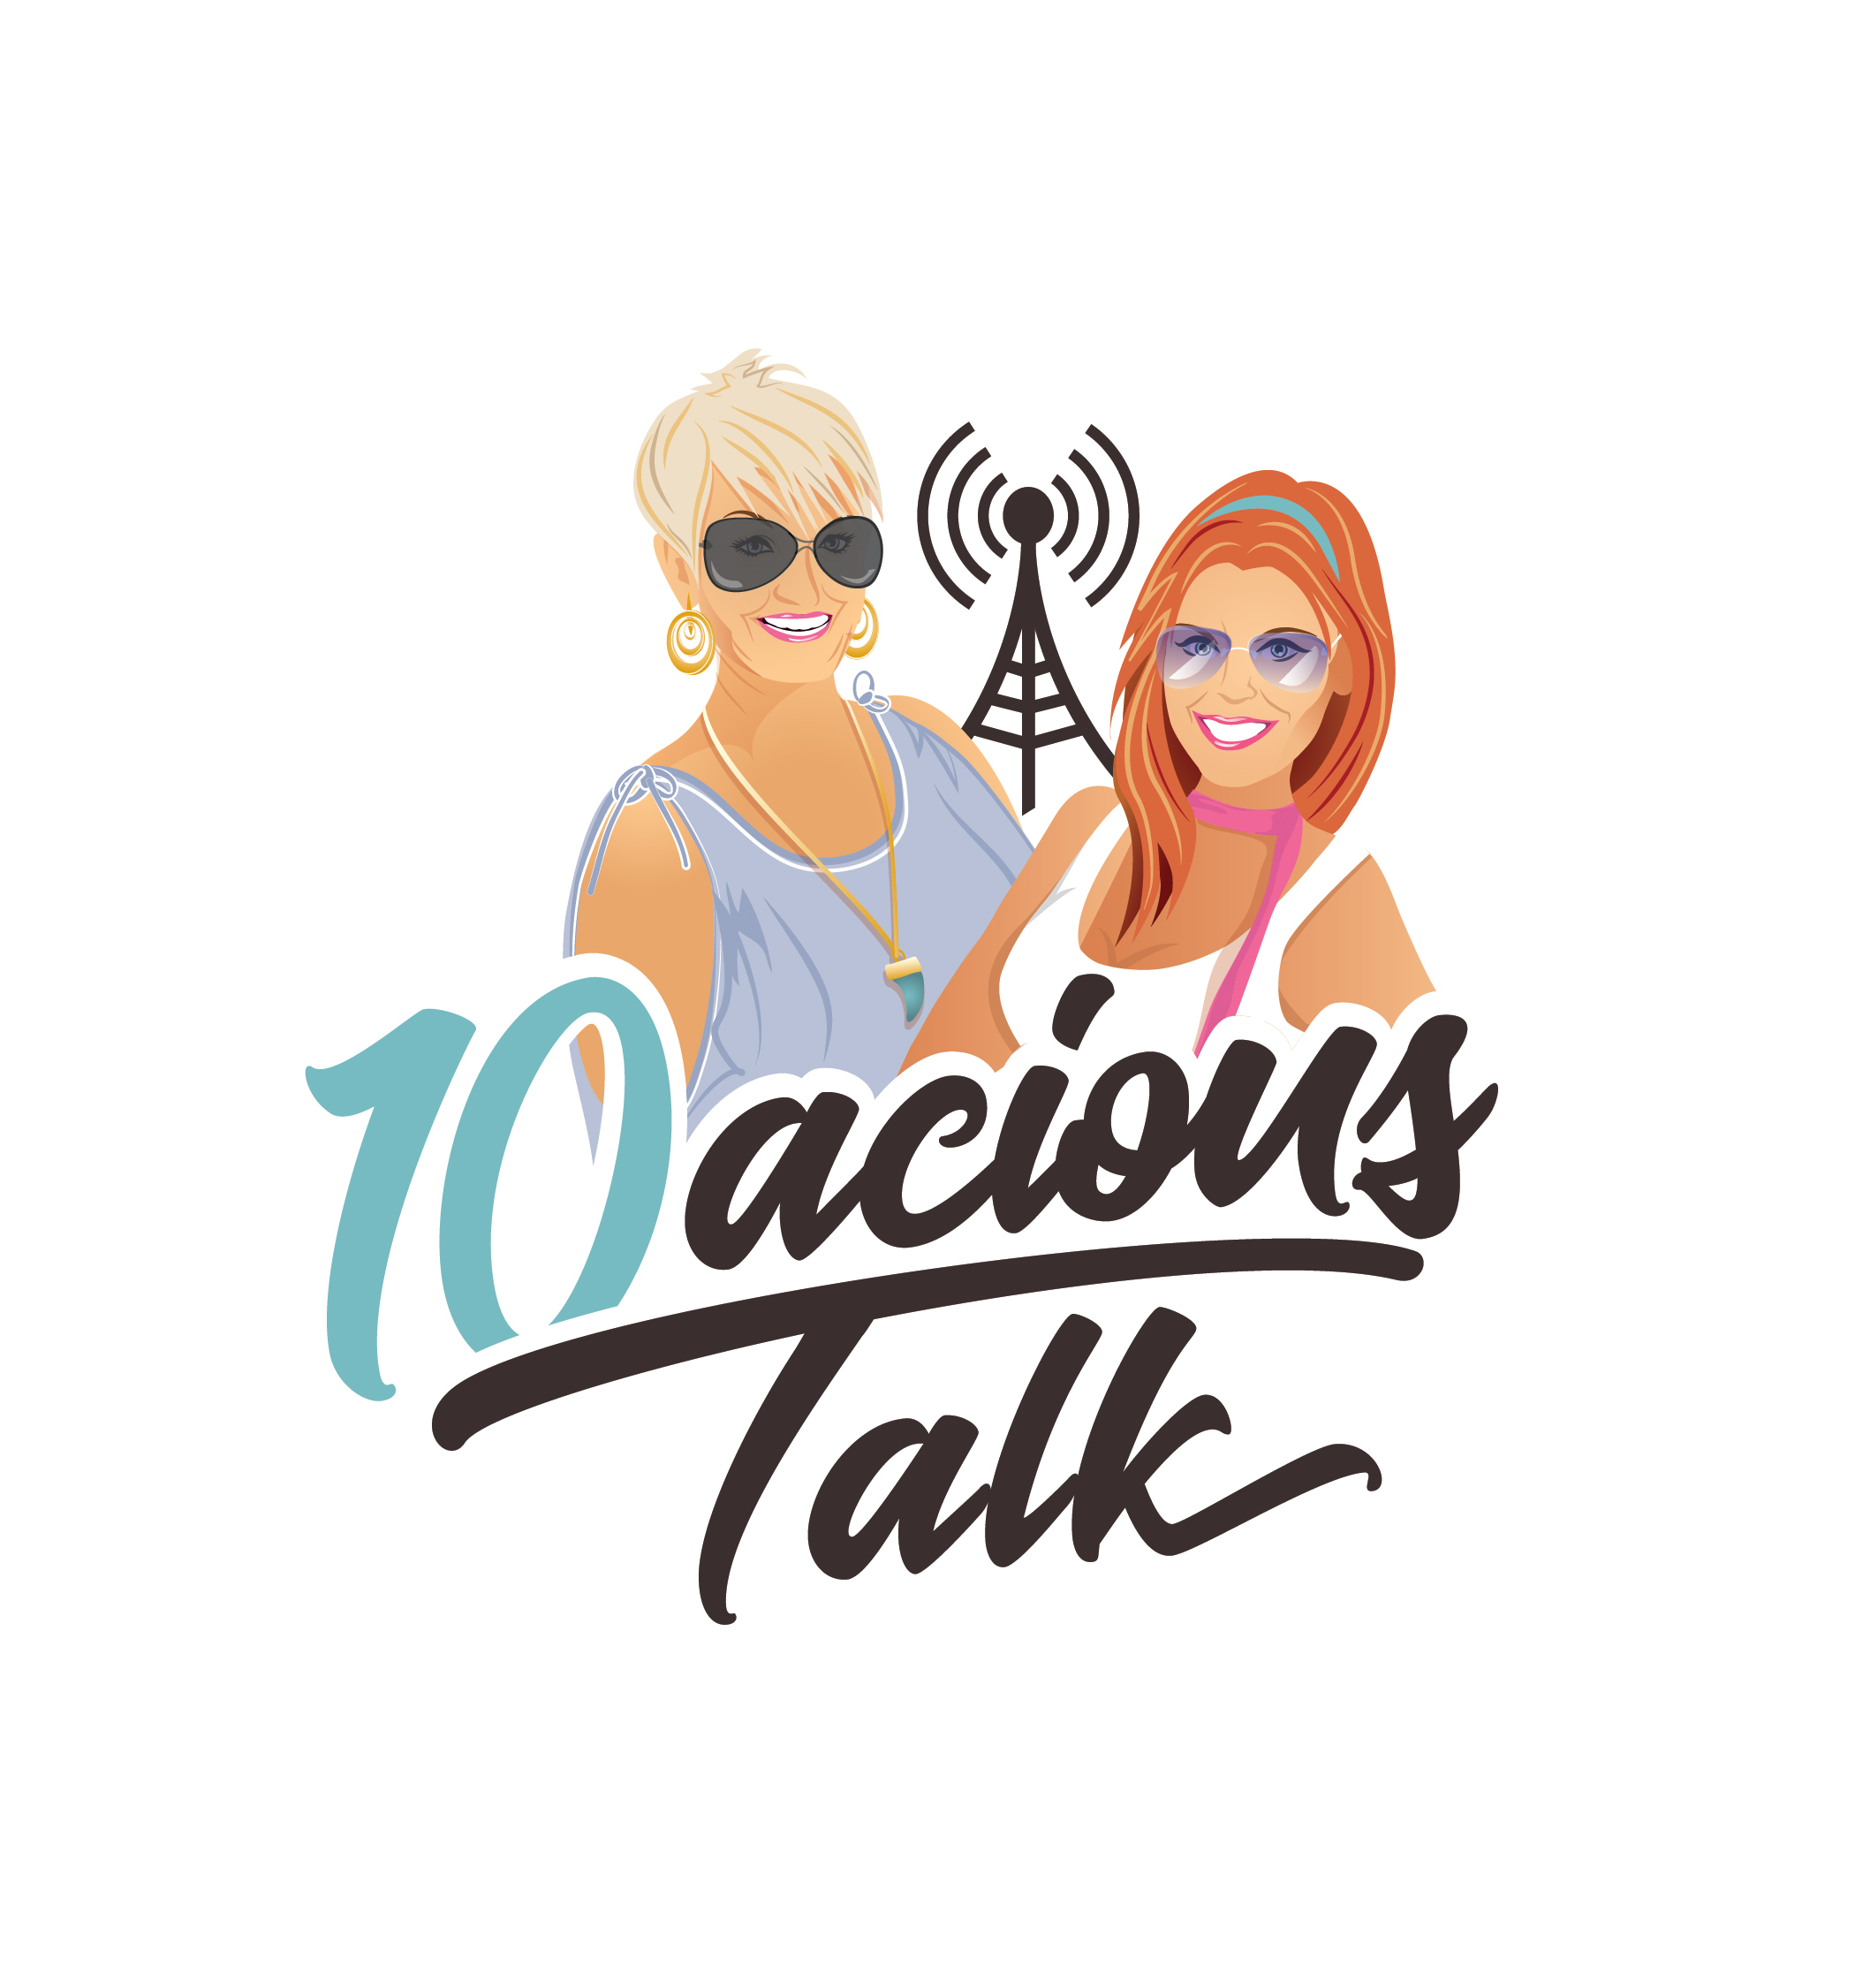 10acious talk logo 1st version.jpg